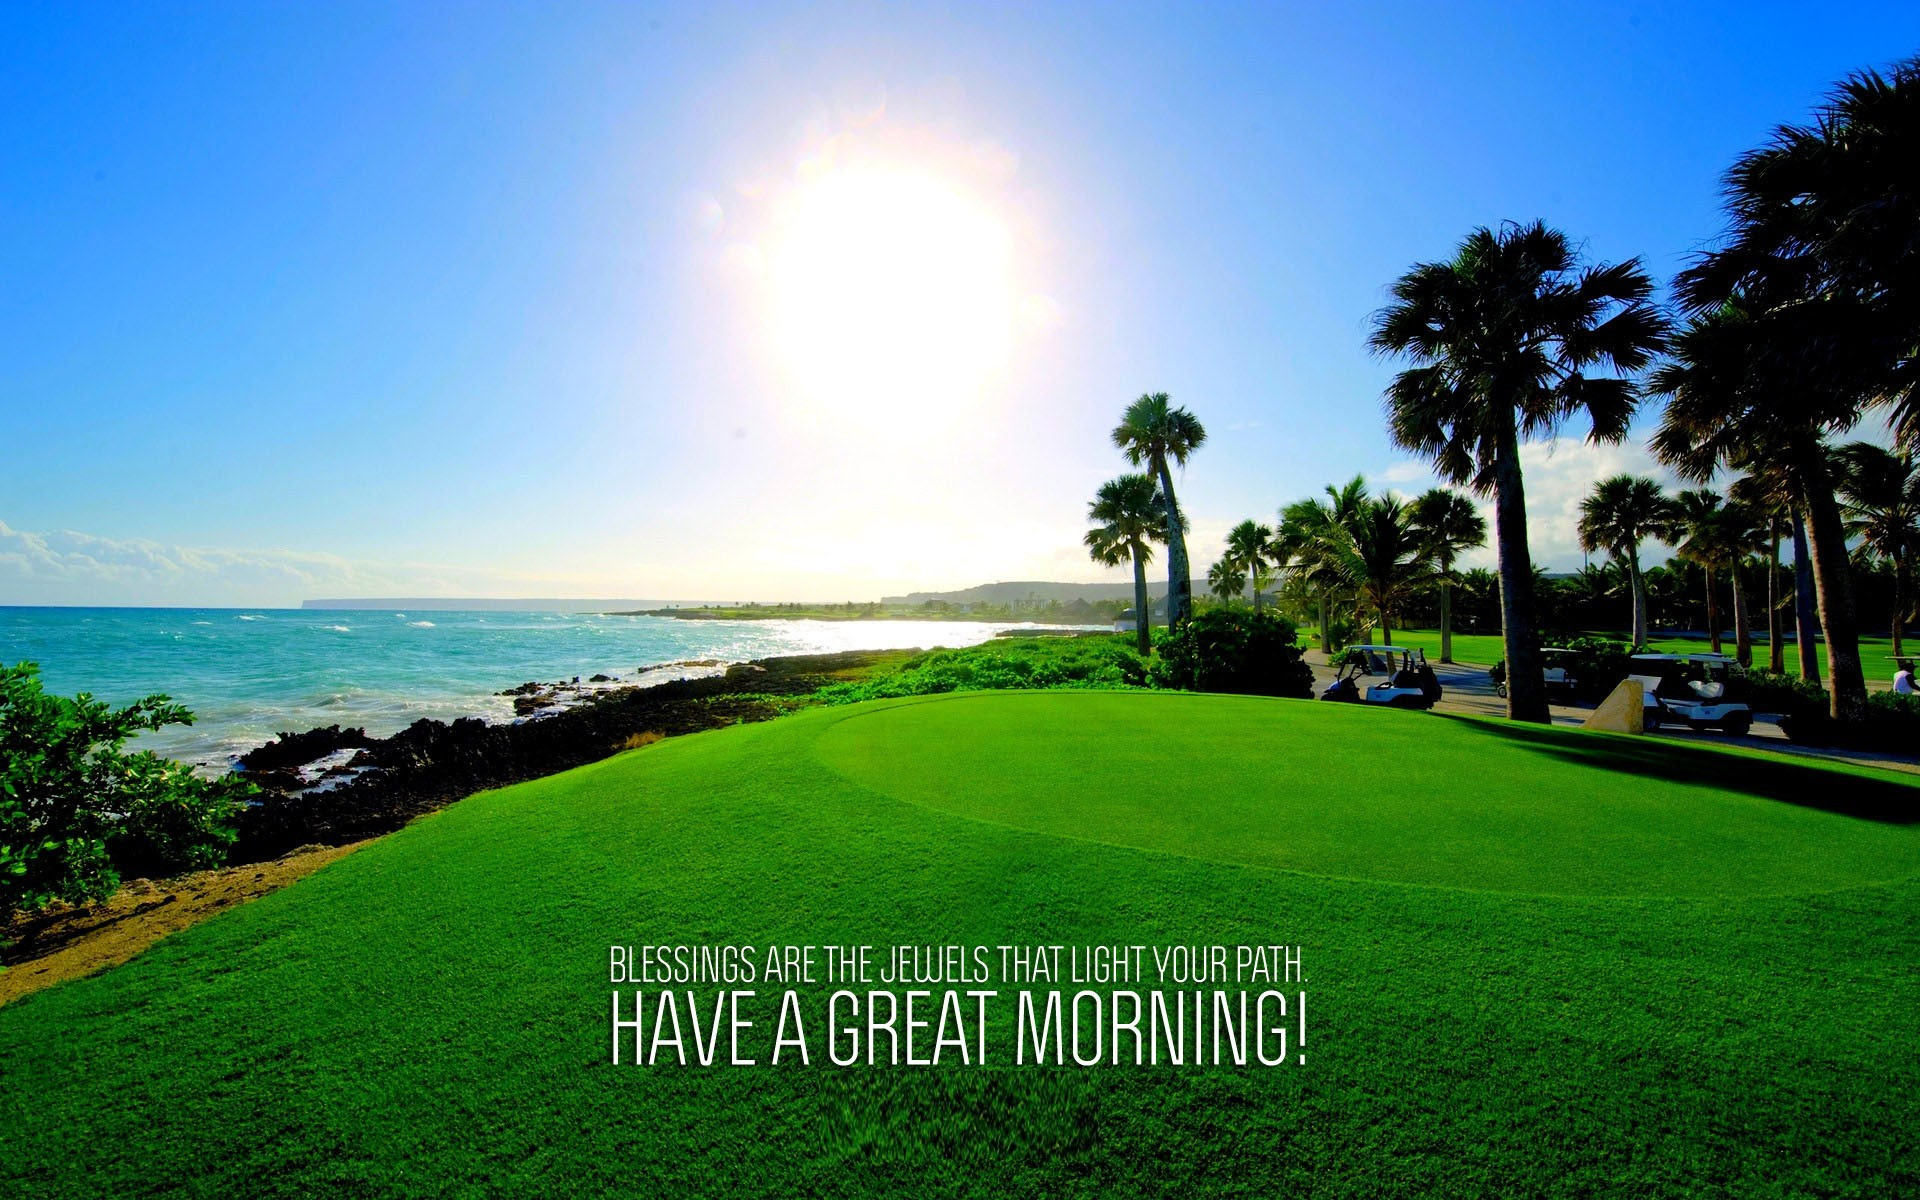 Good Morning Images With Nature Gpf Best Of Nature S Morning For